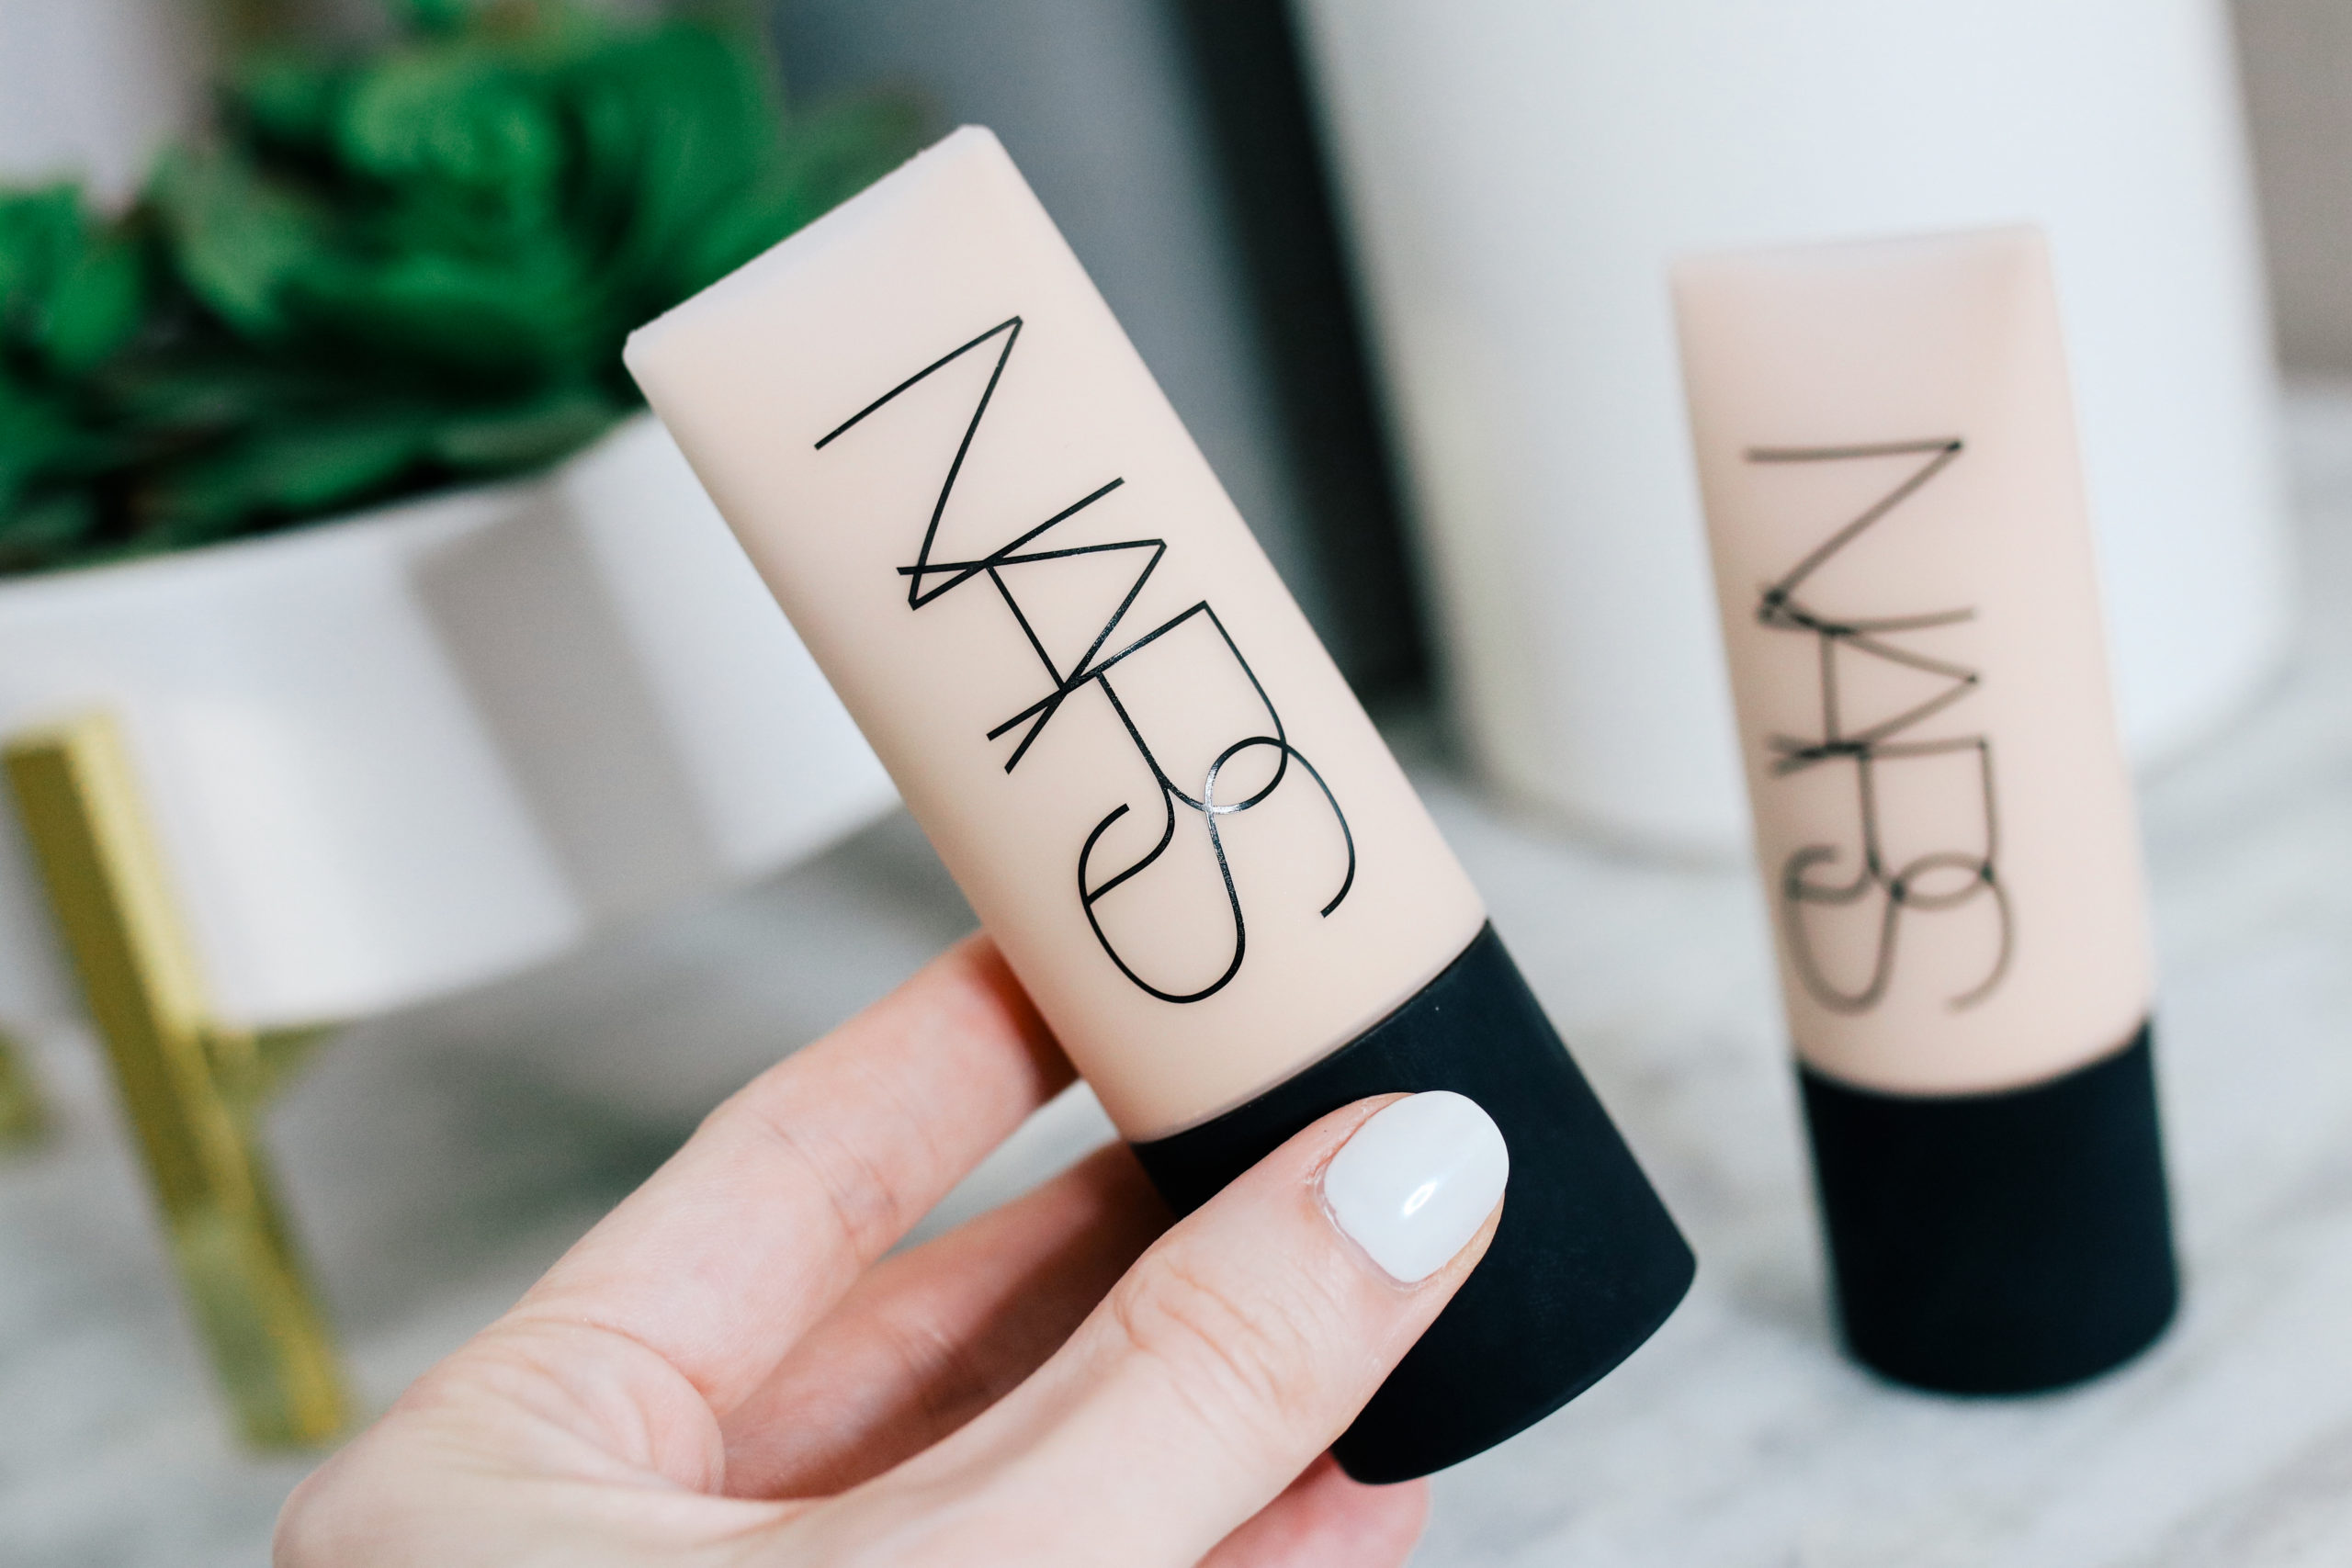 Review Nars Soft Matte Foundation Alittlebitetc